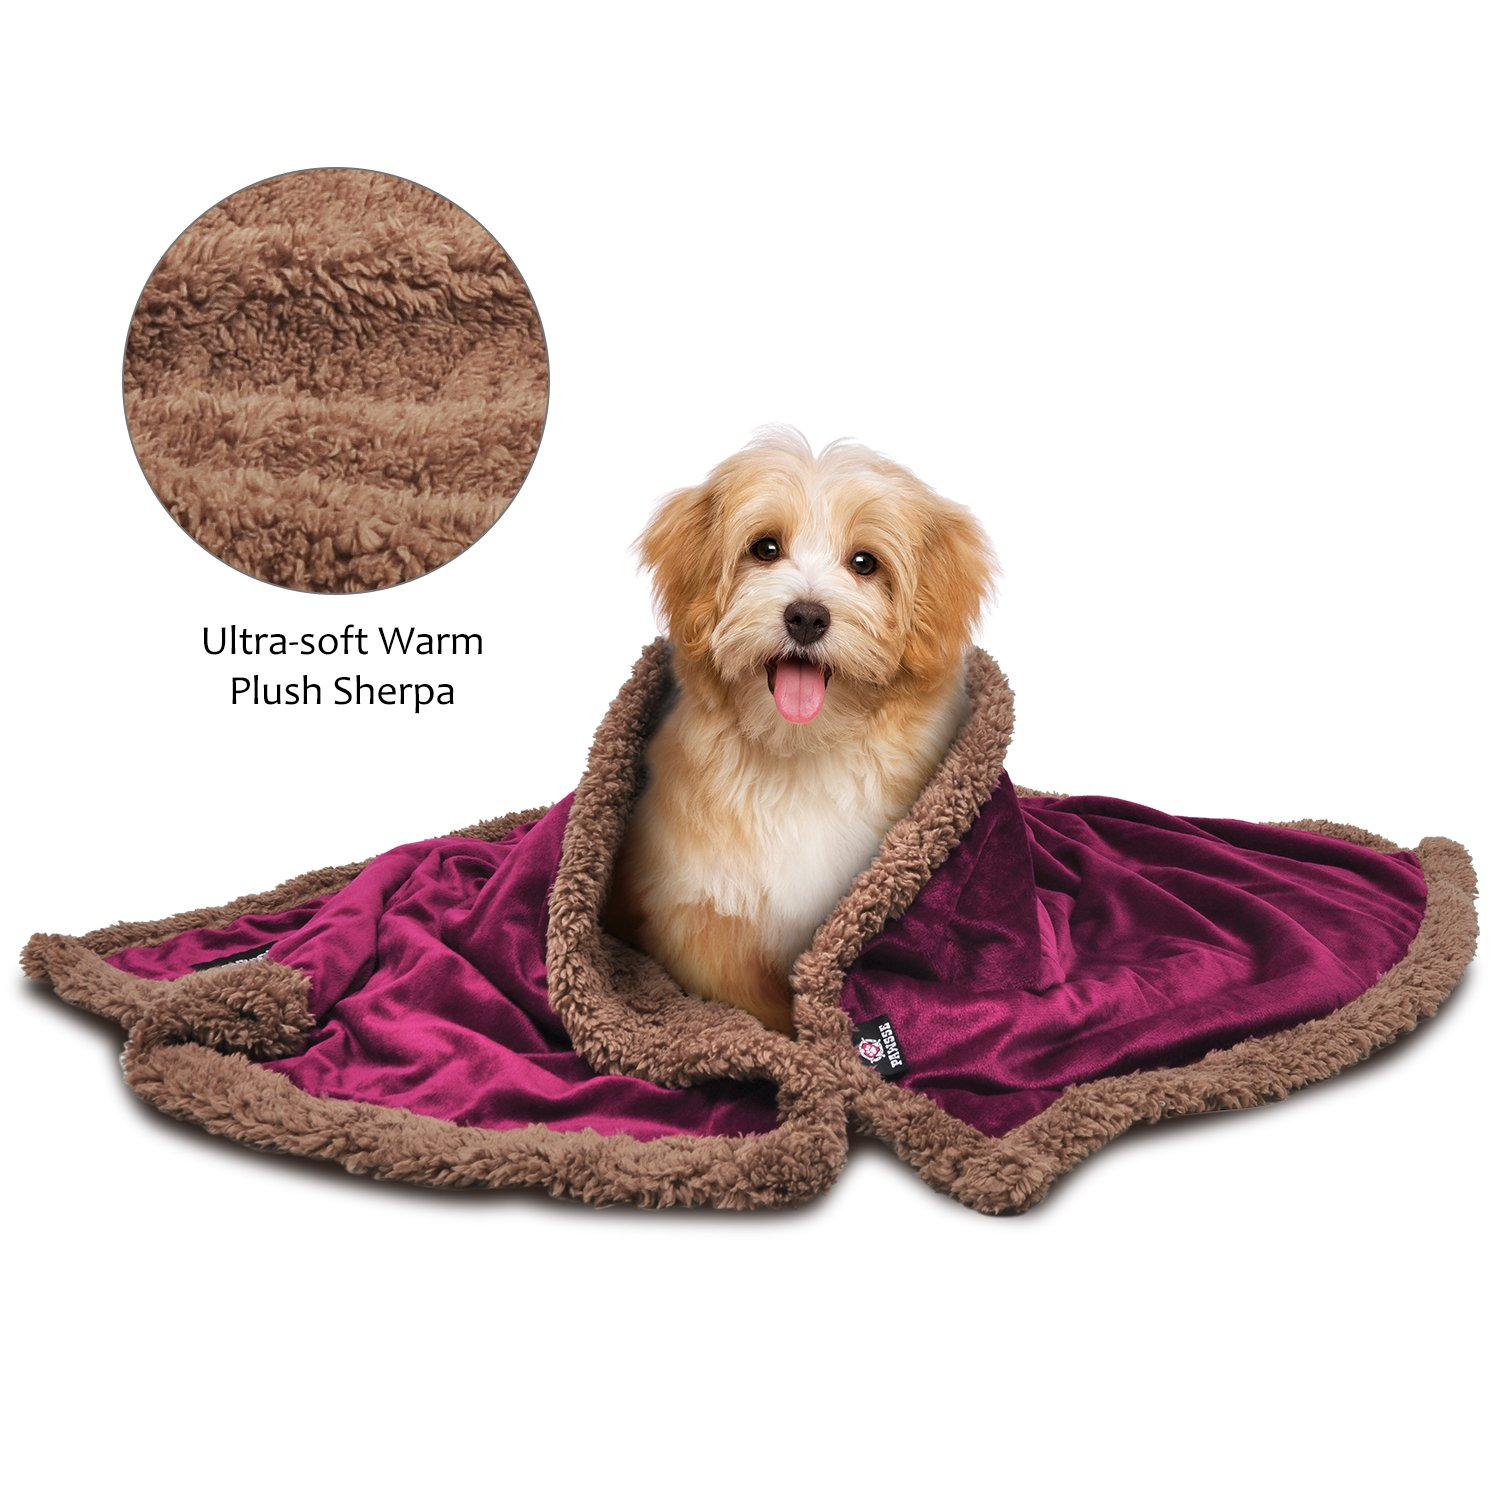 Pawsse Sherpa Puppy Blanket for Small Dogs Kitten, Warm Flannel Plush Pet Bed Blanket Reversible, 45''x30'' Wine/Brown